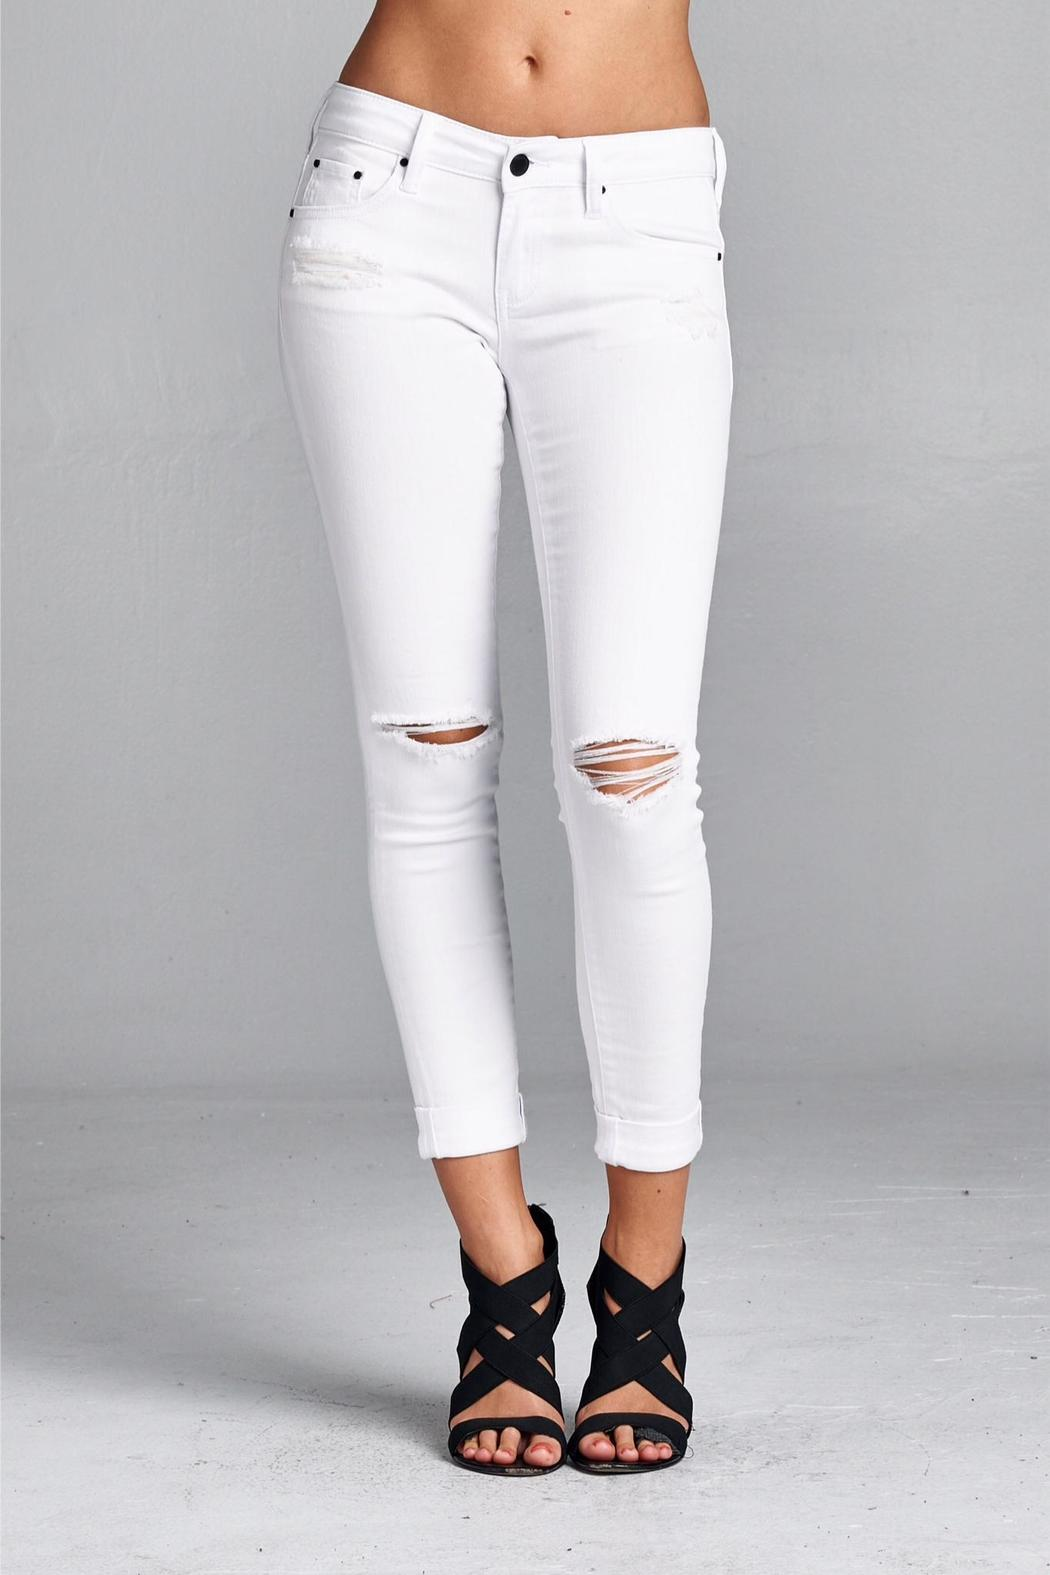 Special A Distressed Skinny Jeans from Las Vegas by Modena Fashion ...